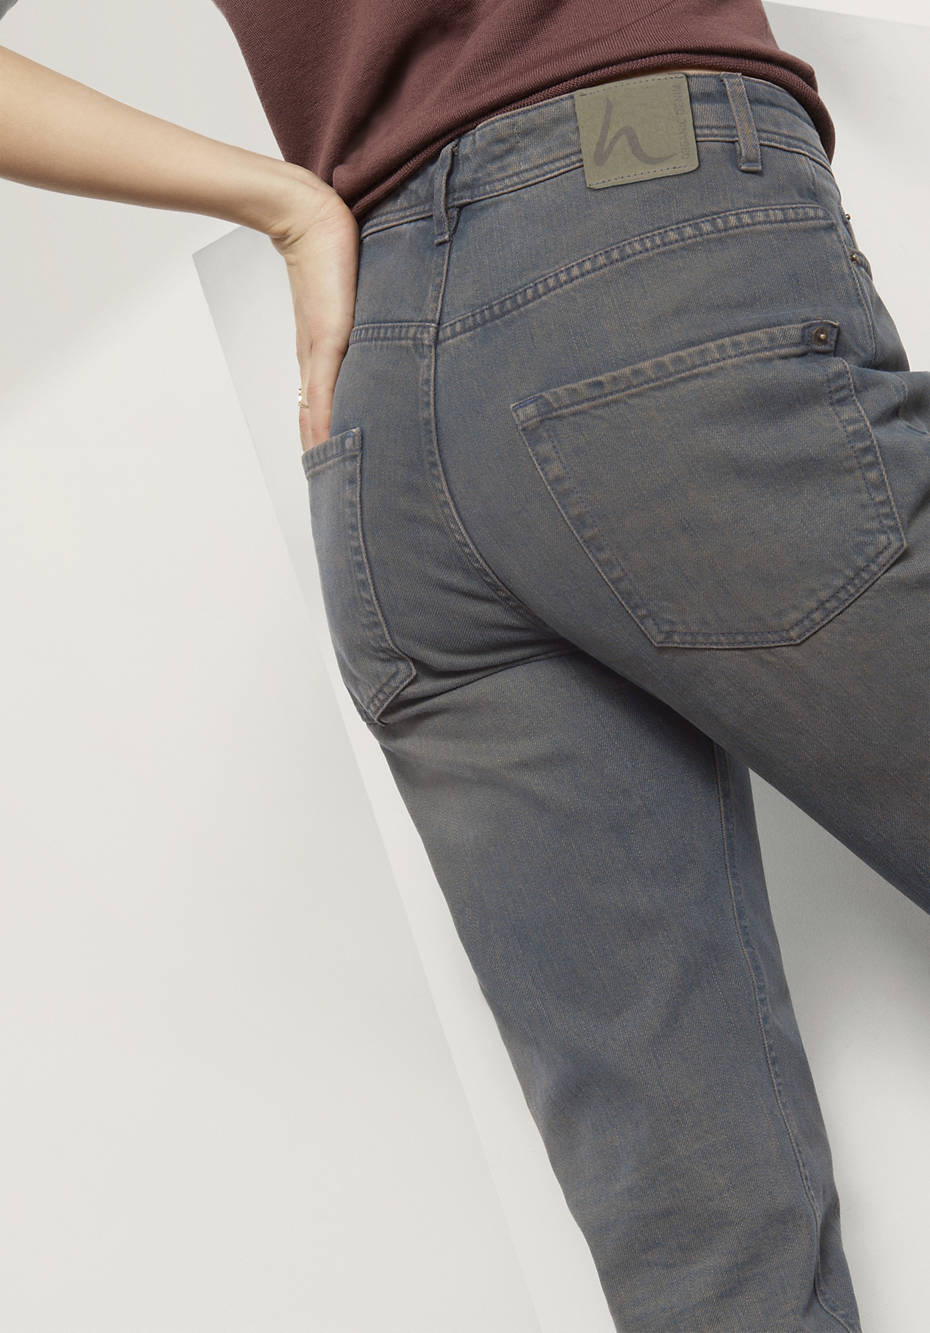 Jeans Boyfriend Fit aus reinem Bio-Denim